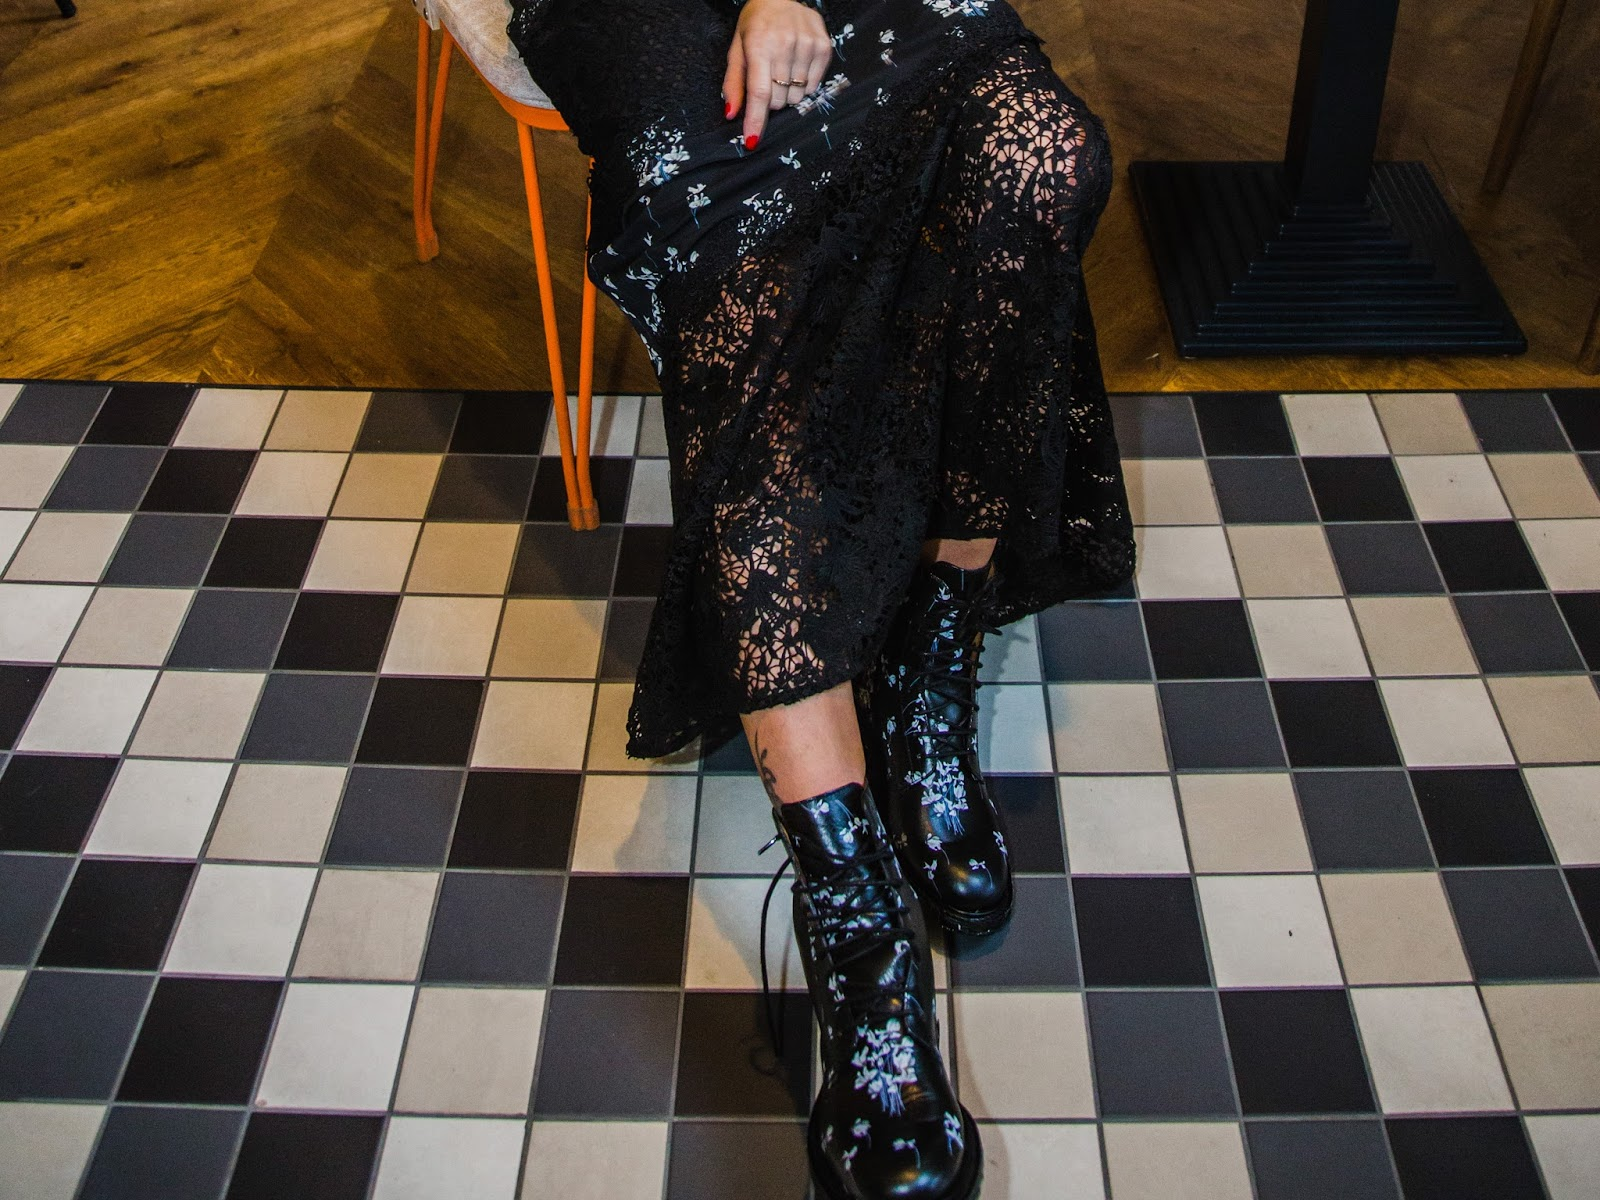 erdem x hm collaboration collection lace maxi dress boots